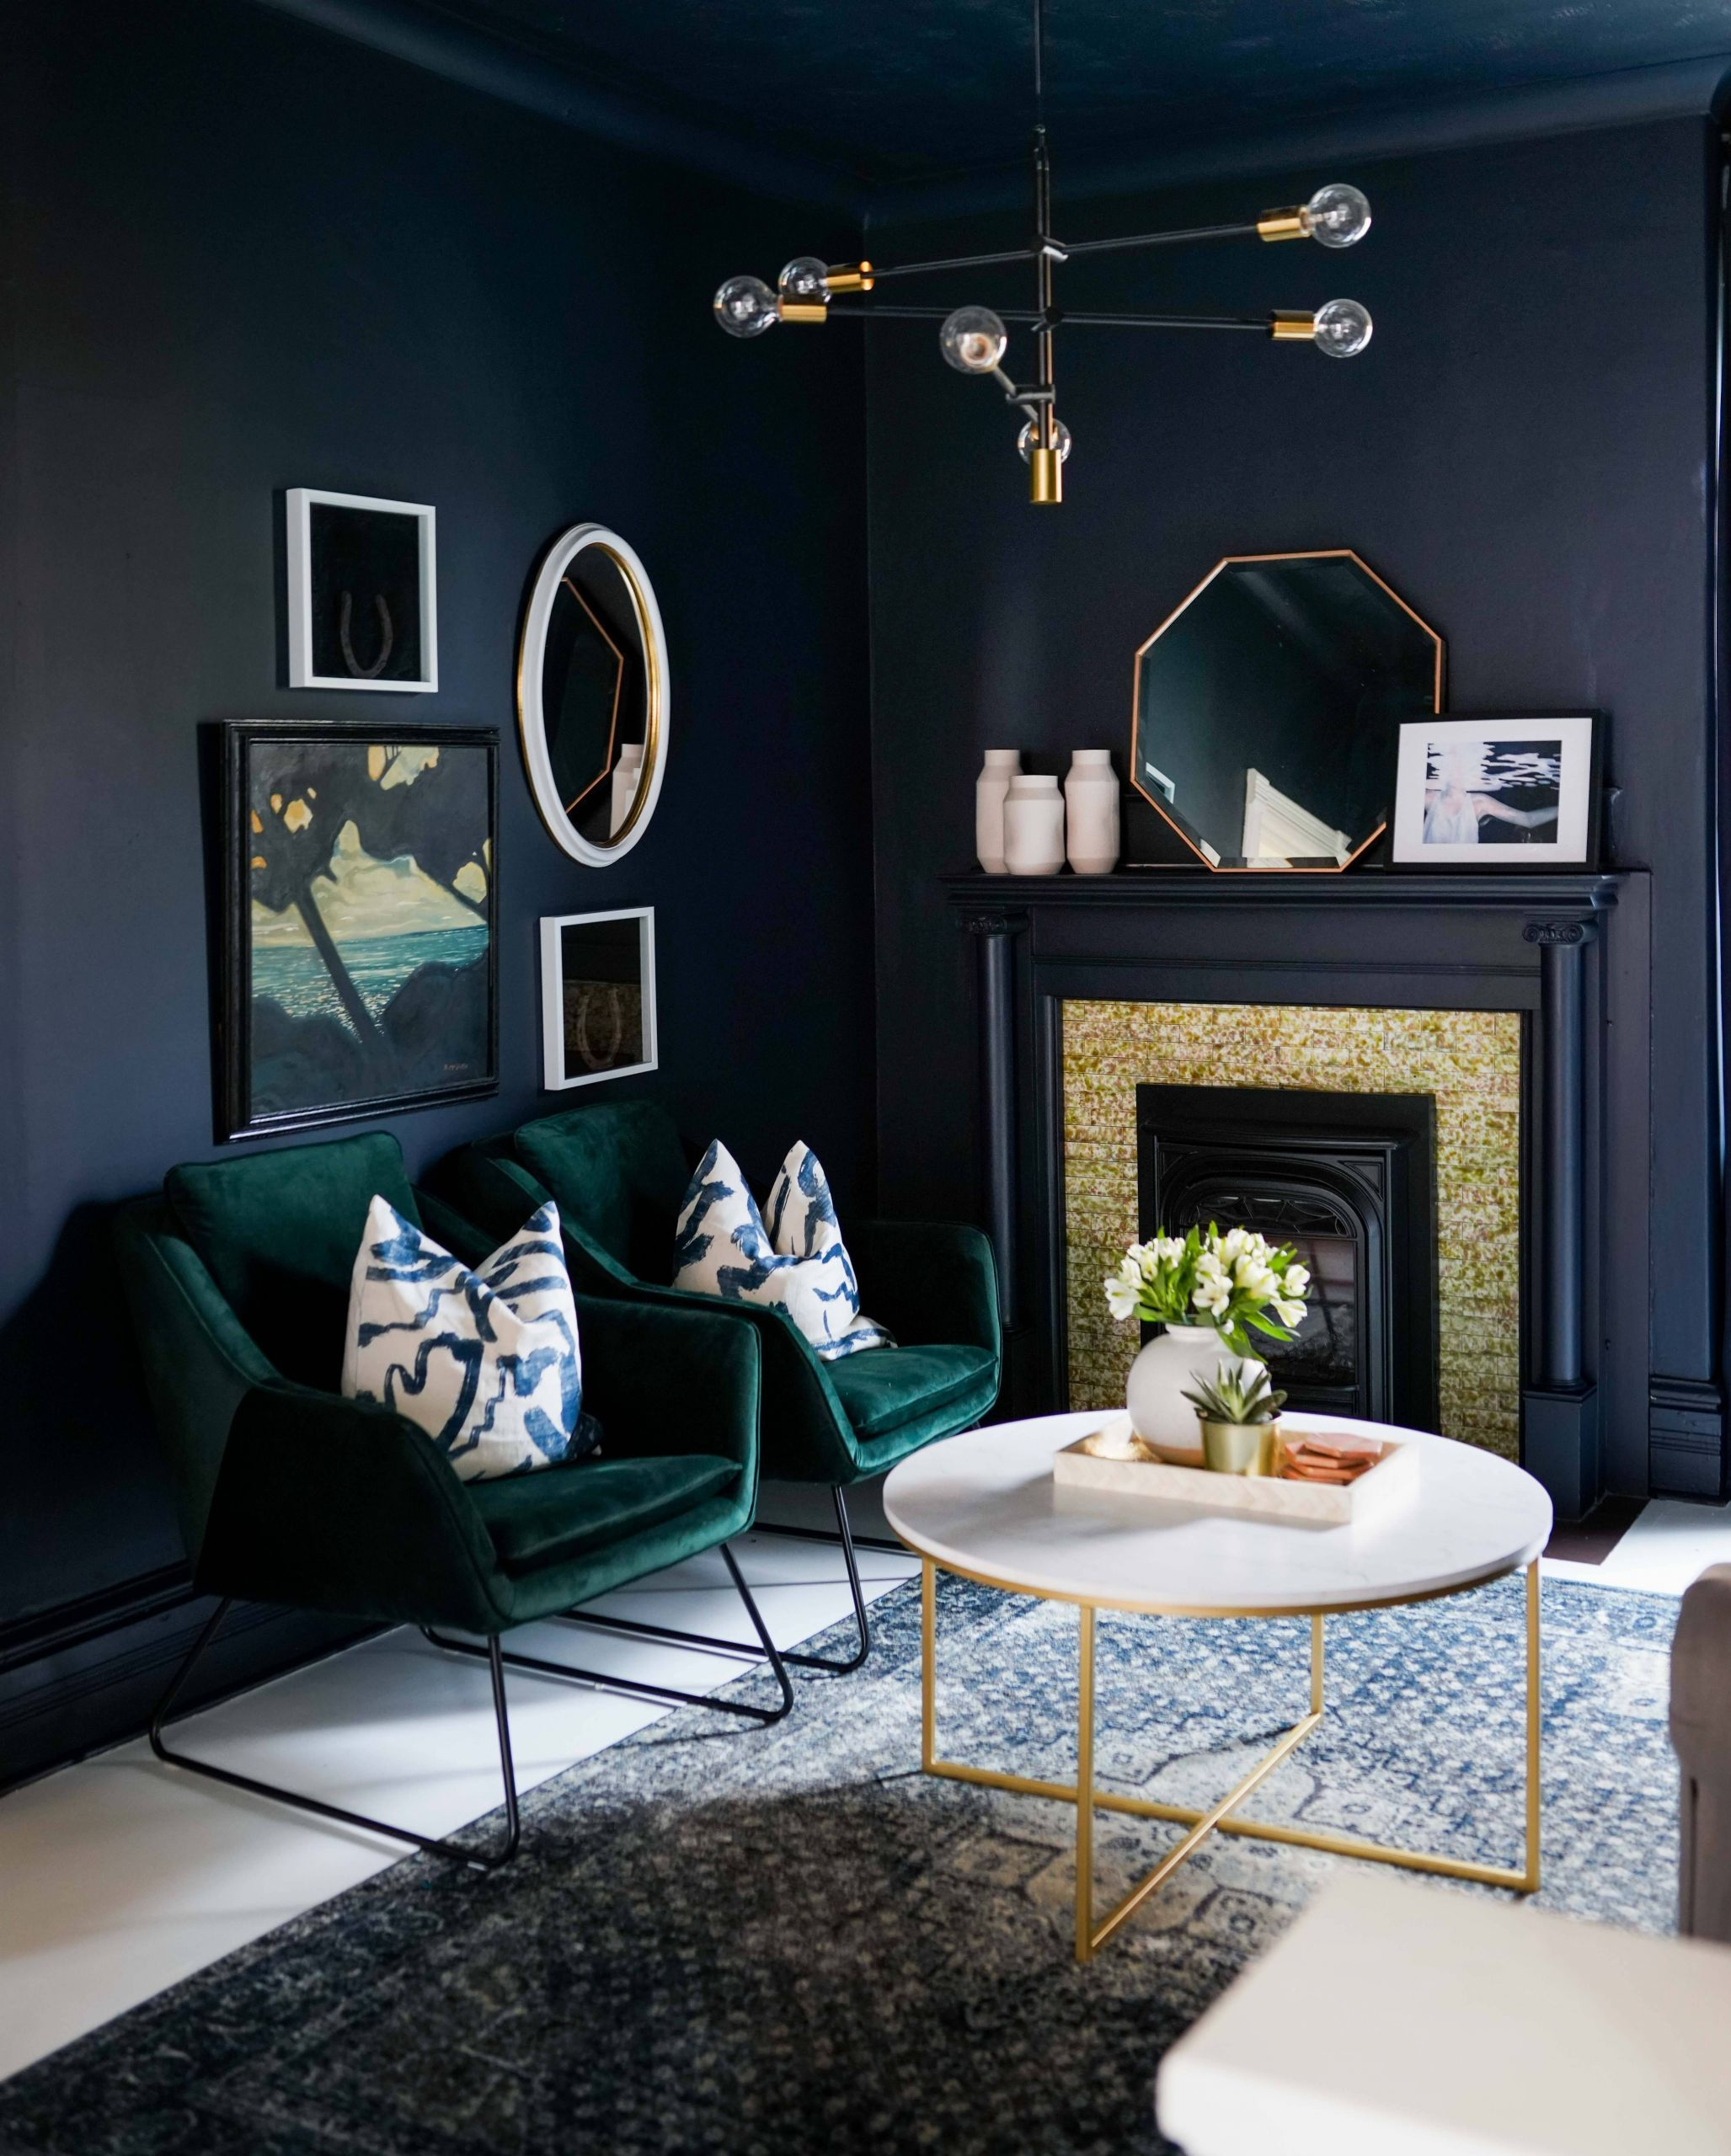 Art Deco Interior Design Luxury Green Velvet Chairs and Dark Blue Moody Walls E Room